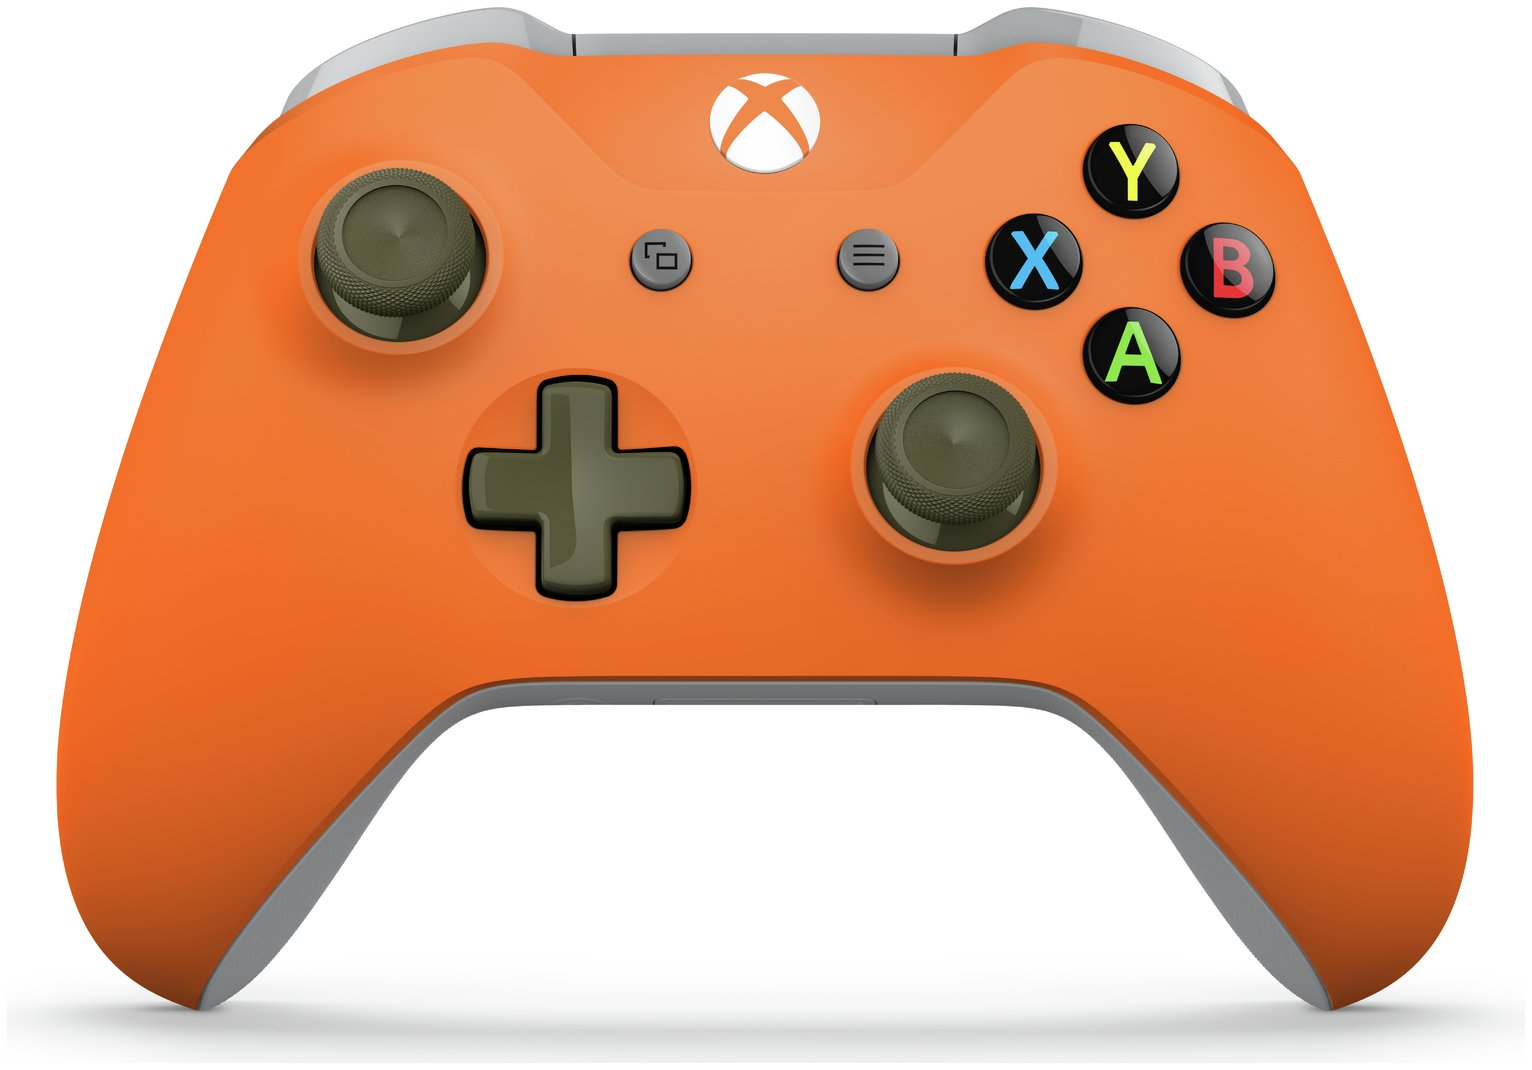 Xbox Wireless Controller – Zest Orange / Military Green